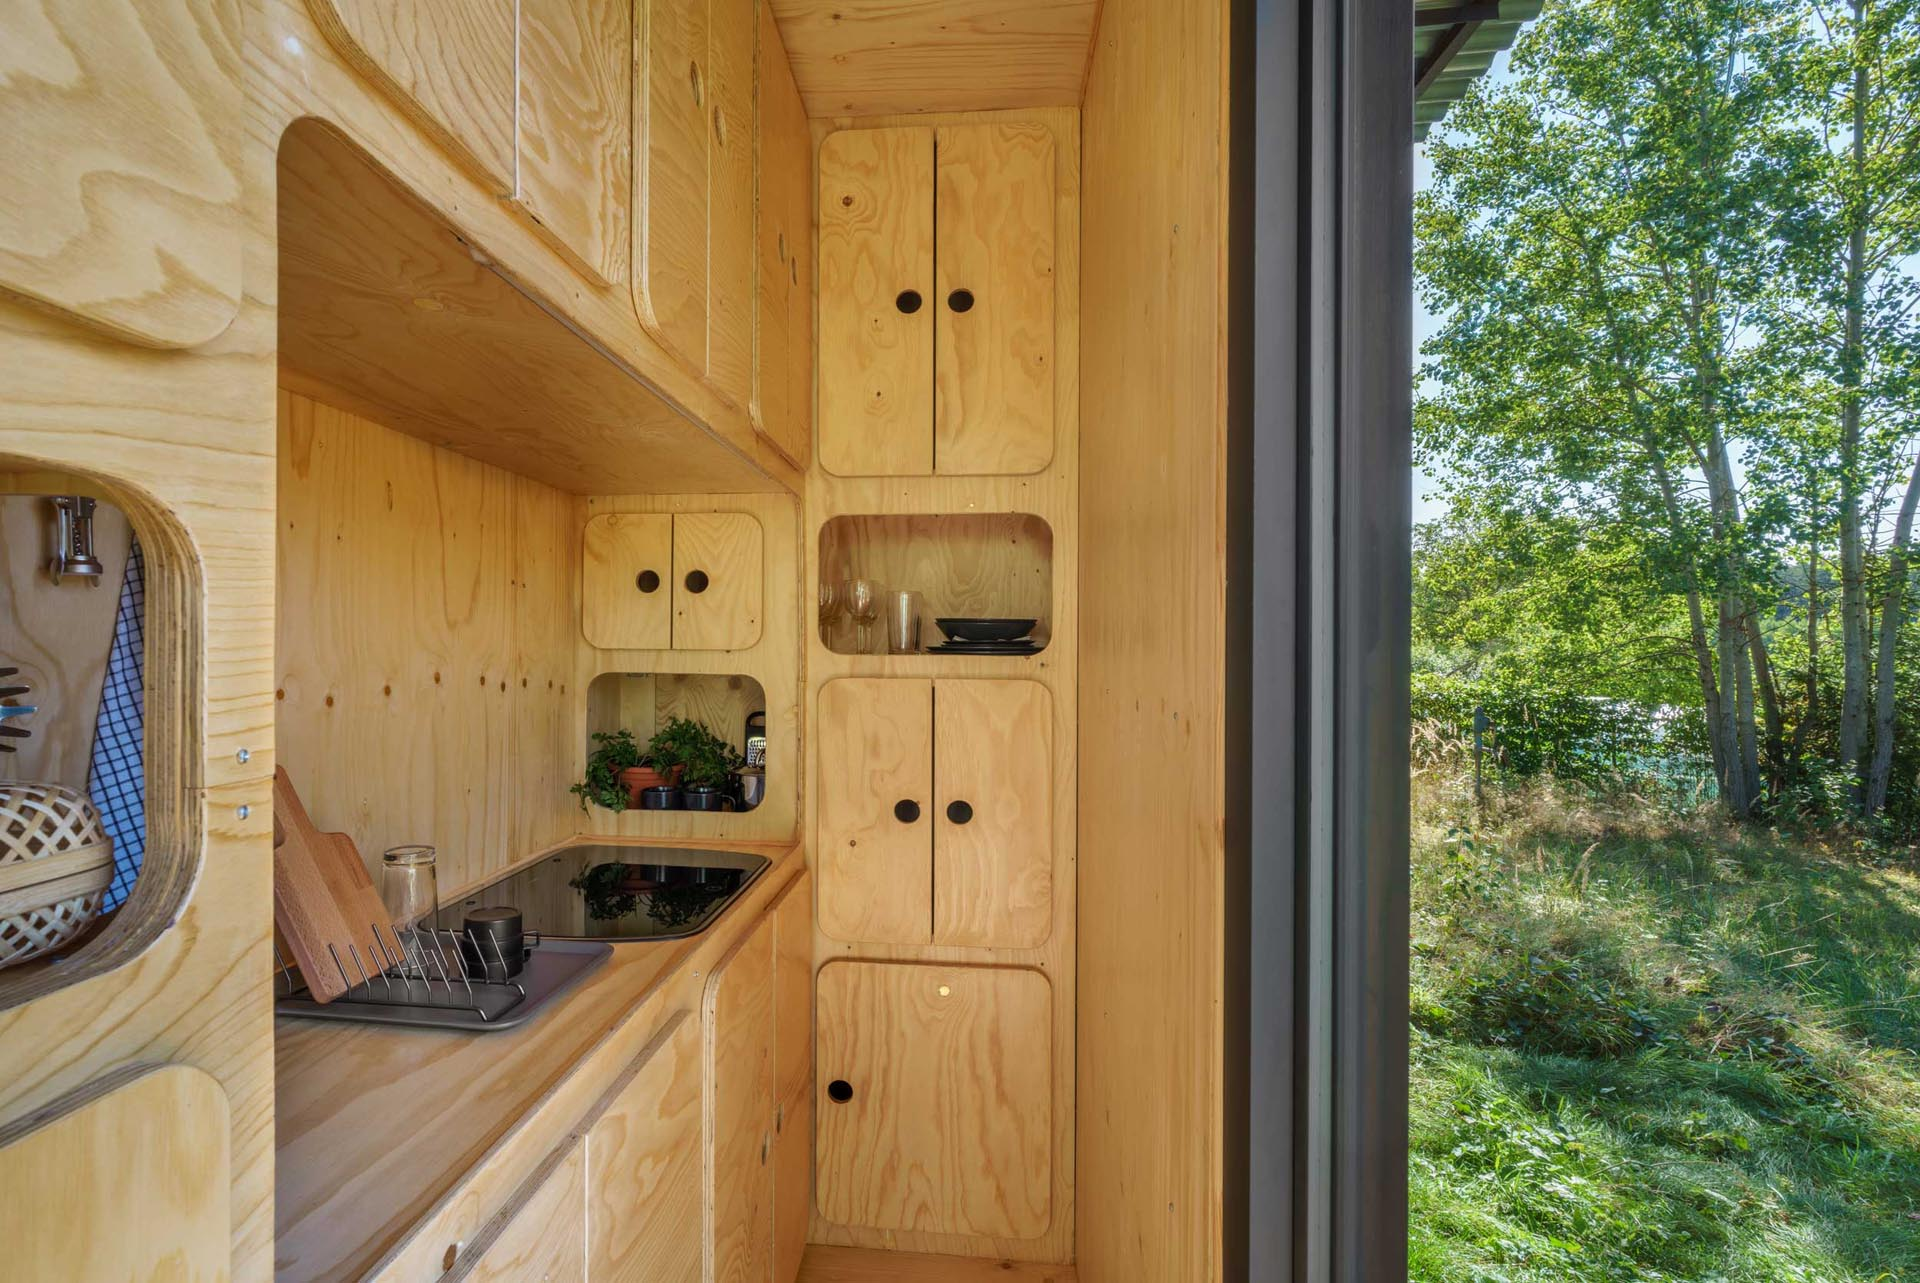 A plywood kitchen inside a tiny home made from a small shipping container.